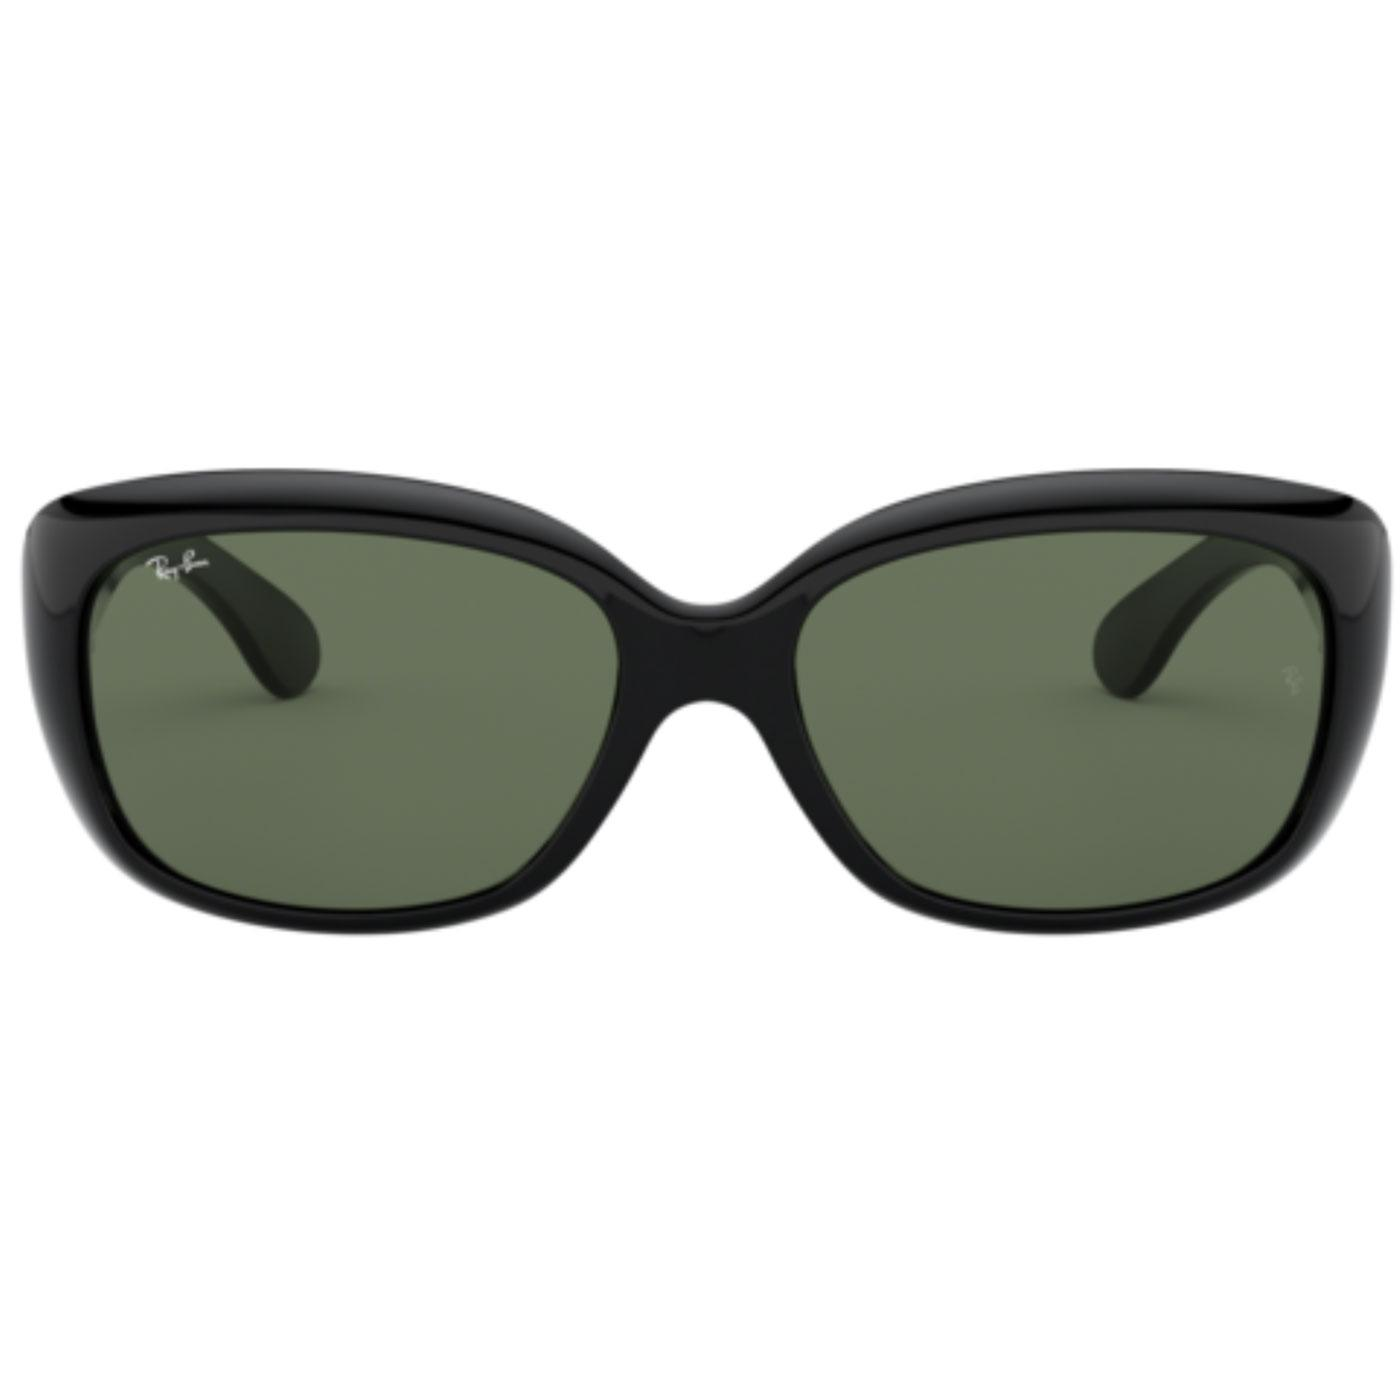 Ray-Ban Jackie Ohh Retro 60s Cats Eye Sunglasses